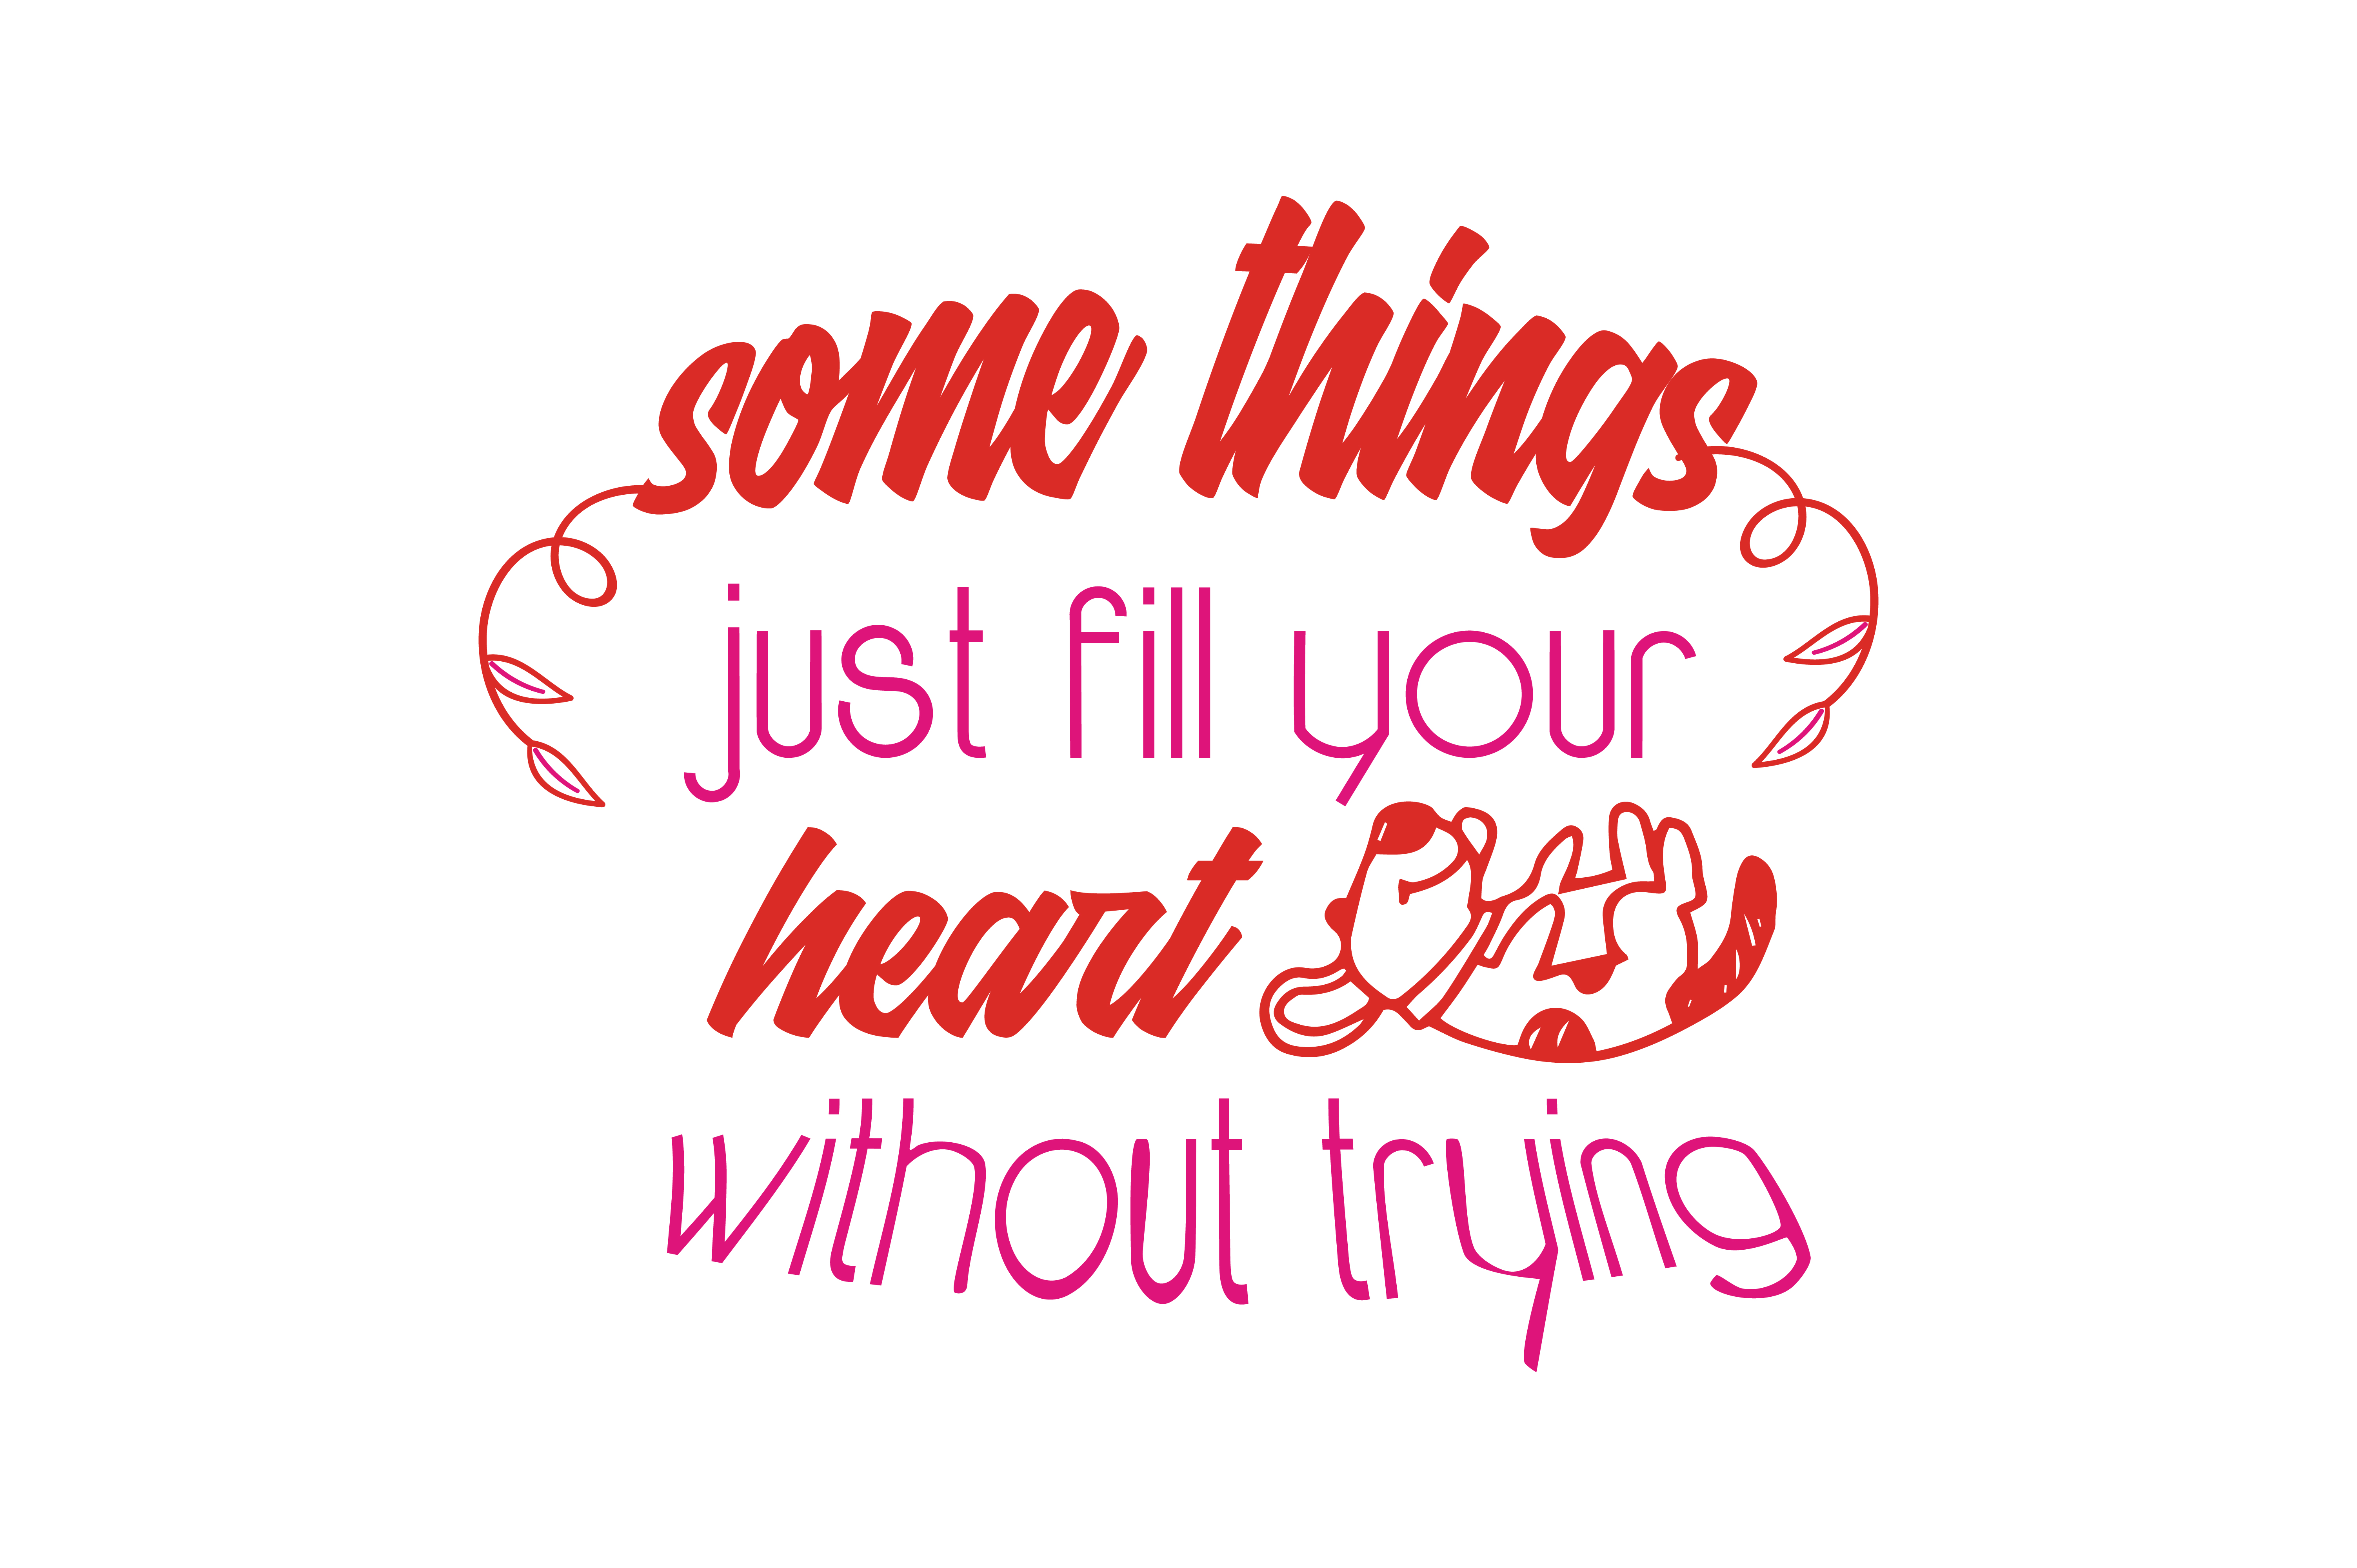 Something Just Fill Your Heart Without Trying Quote SVG Cut